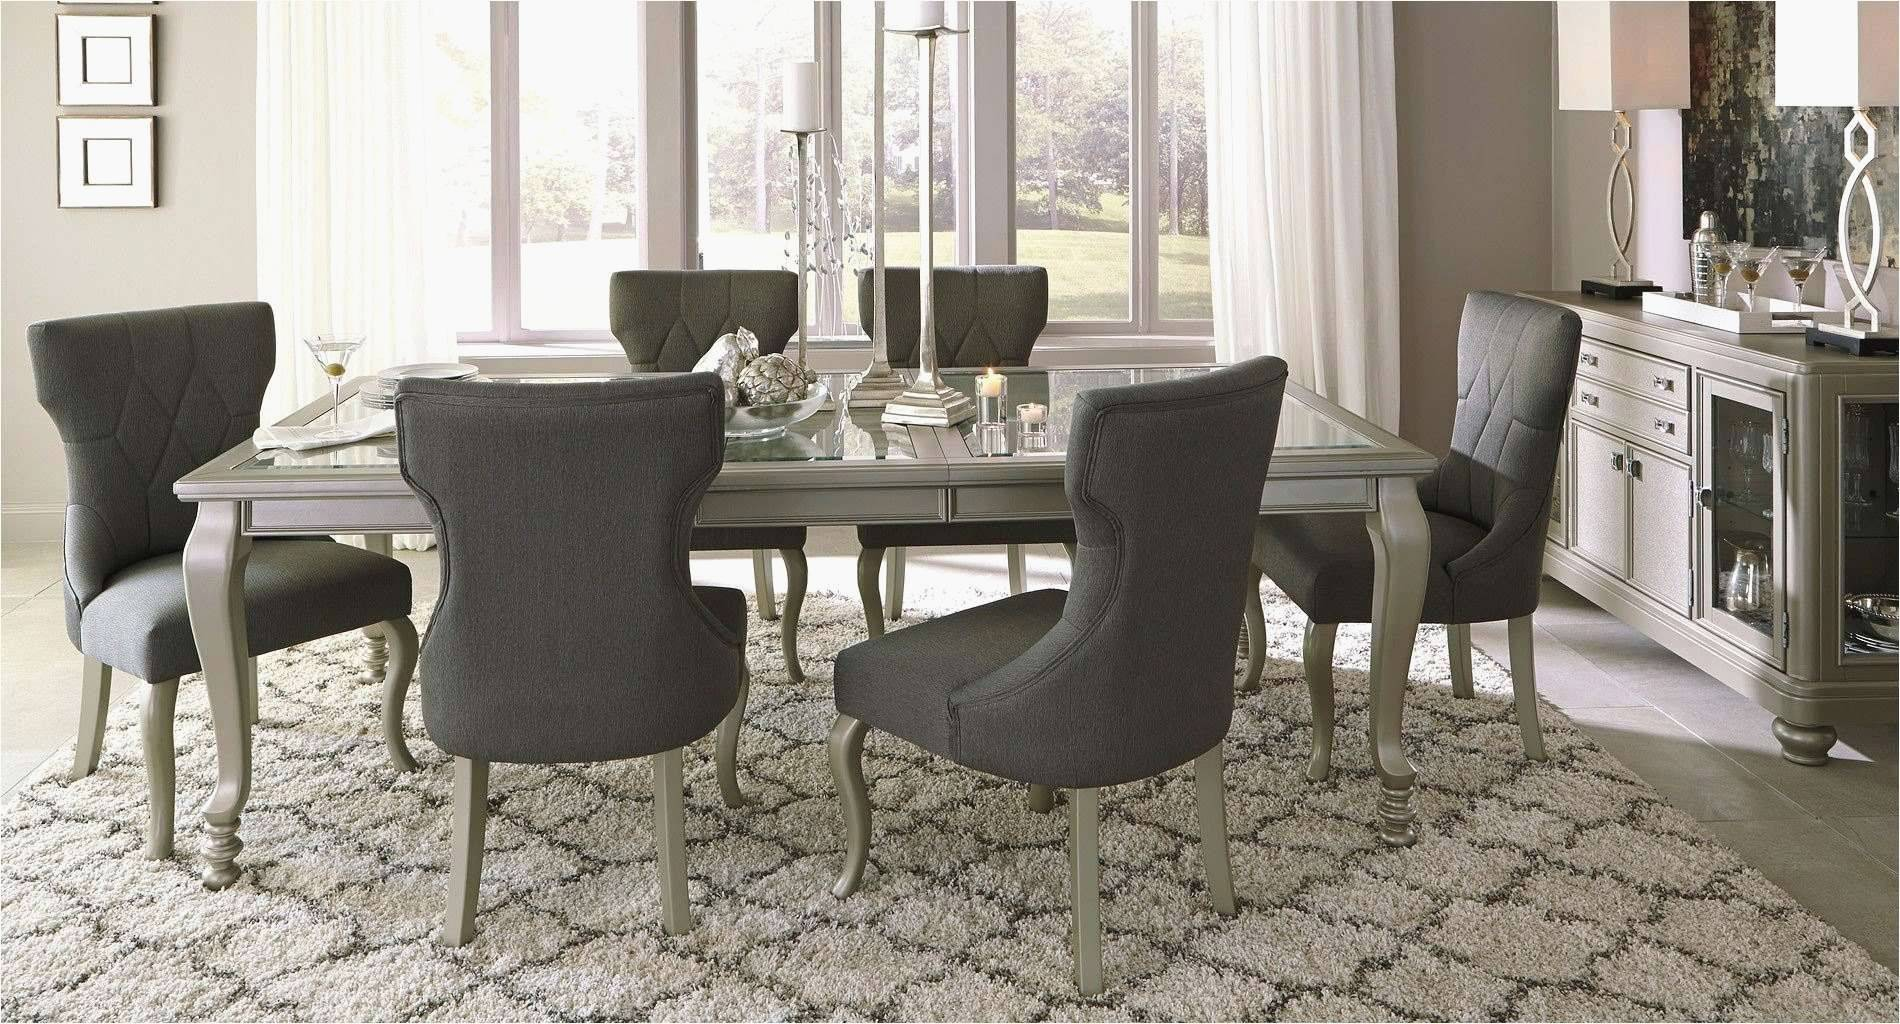 modern contemporary dining table awesome 21 fresh painted dining chairs of modern contemporary dining table